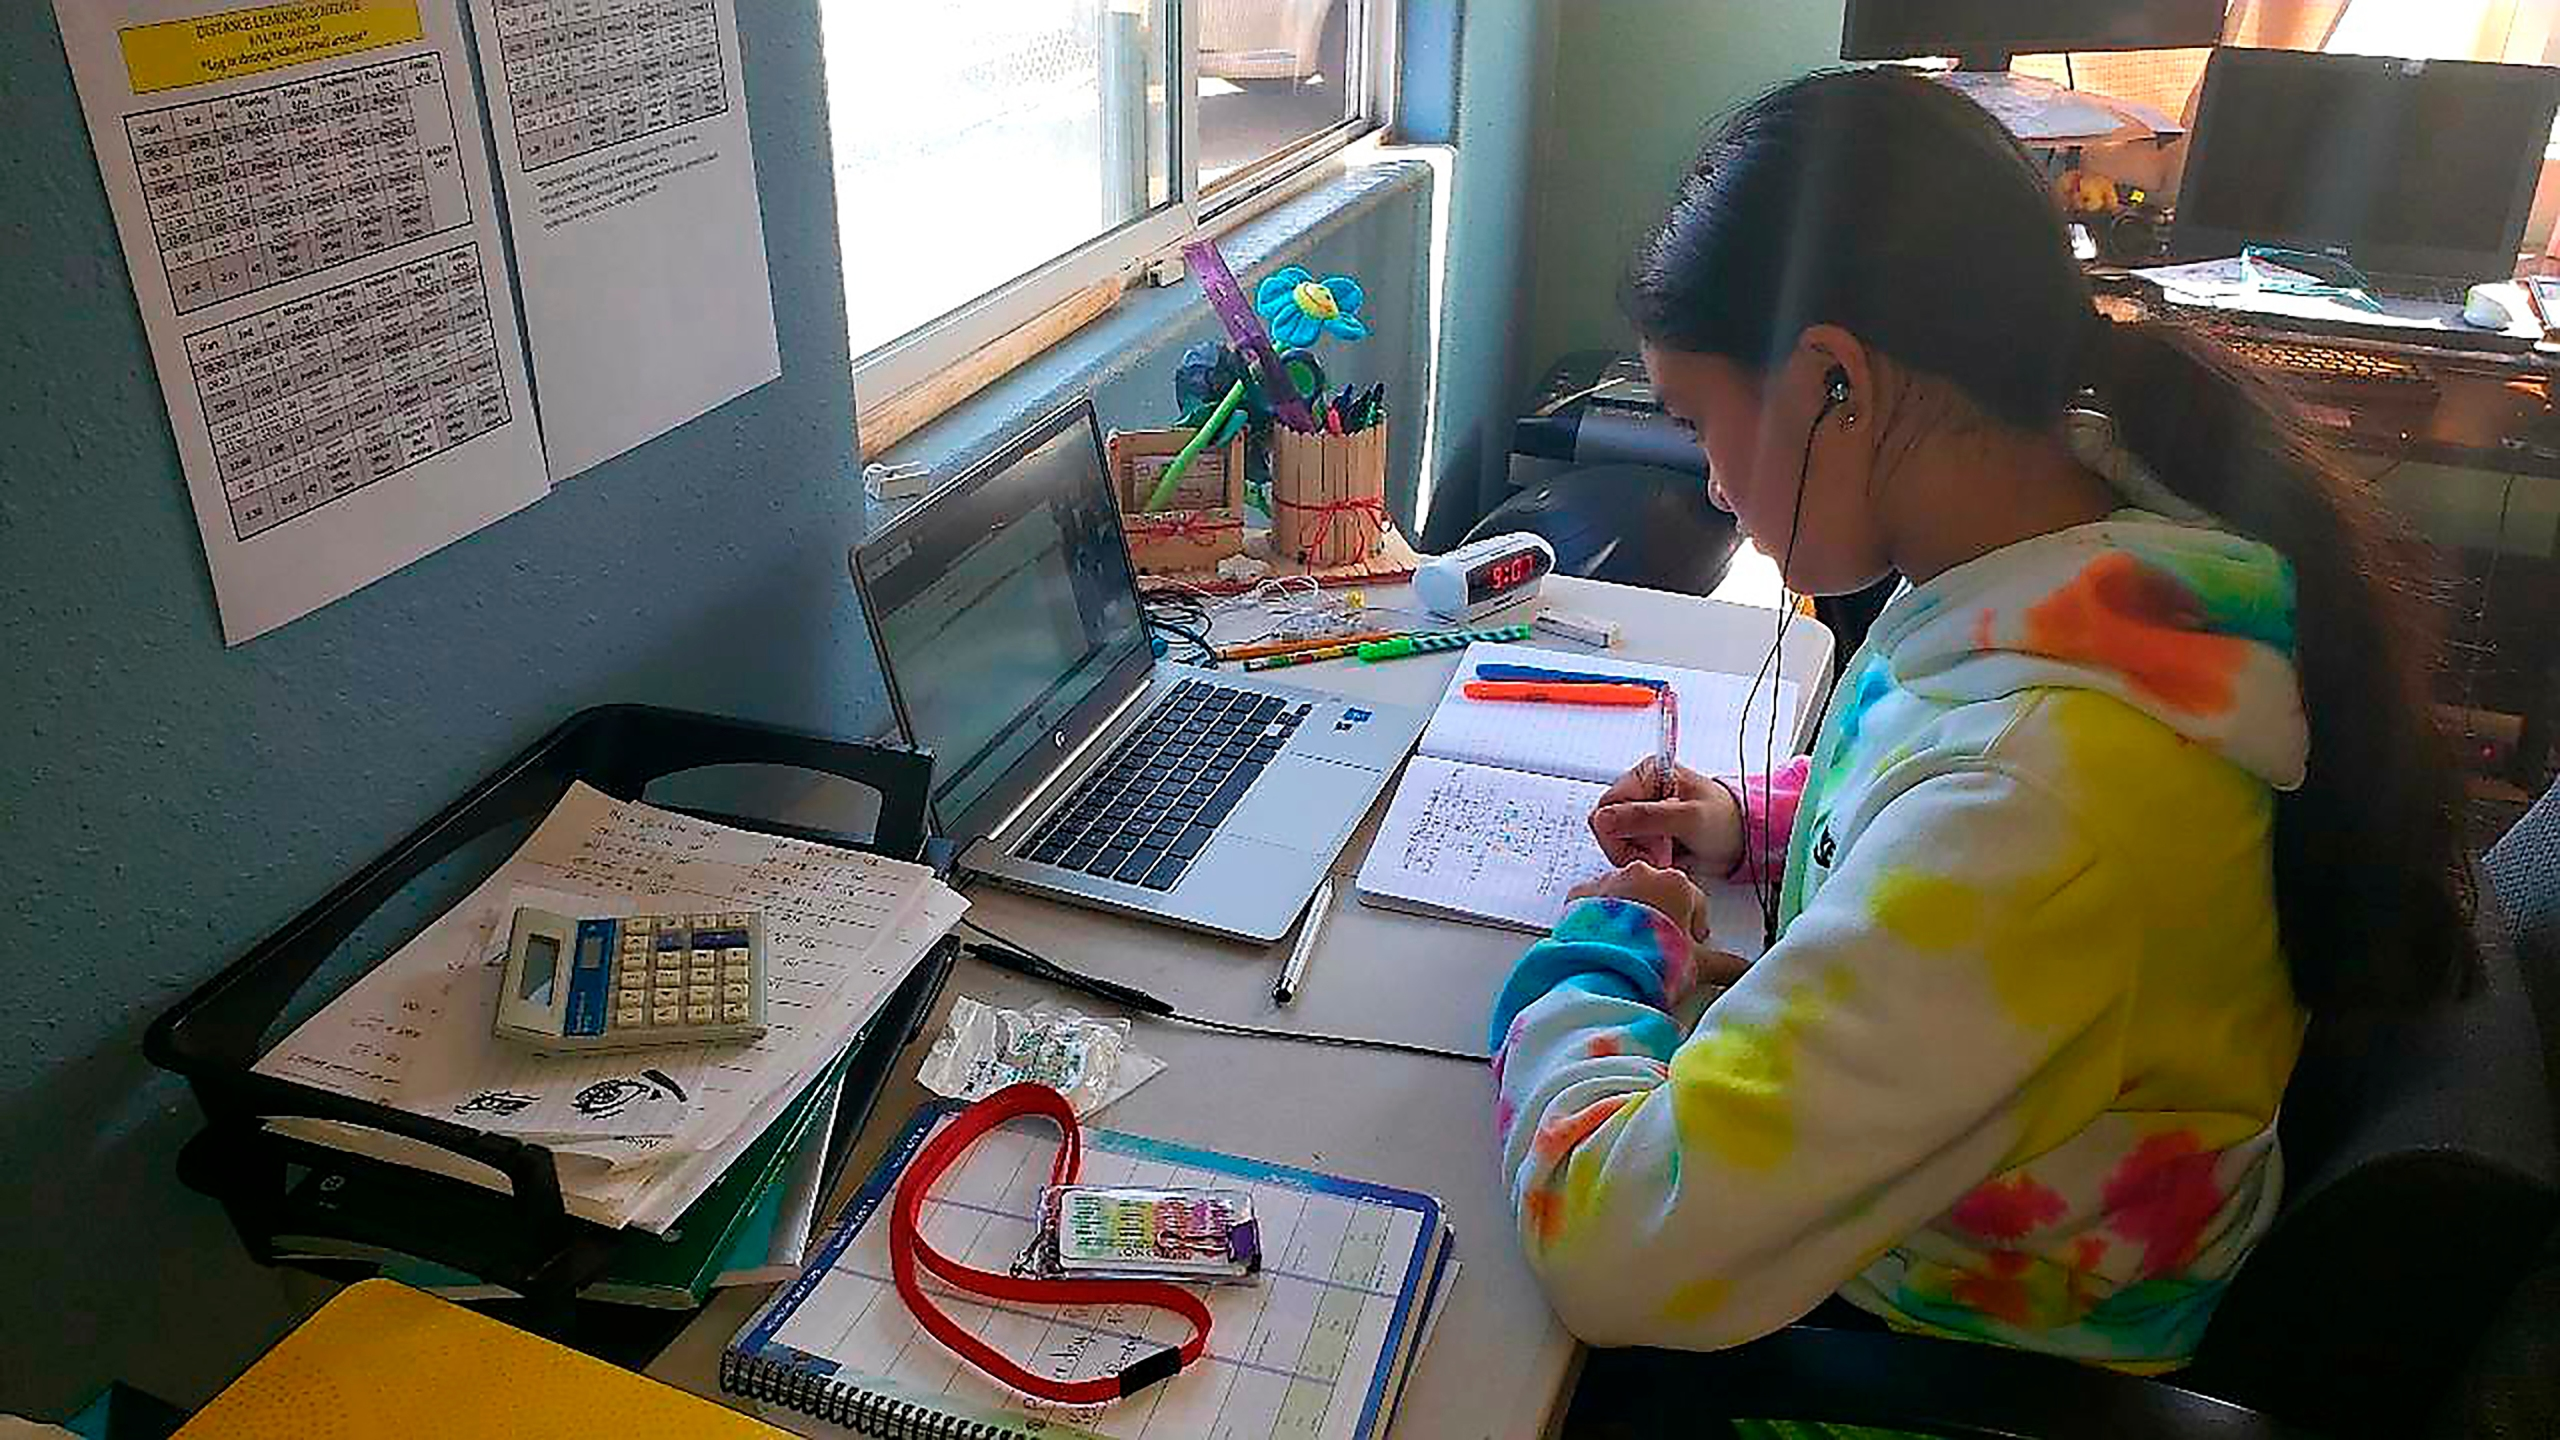 This photo provided by Charles Timtim shows his daughter doing schoolwork from home in Waipahu, Hawaii on Sept. 22, 2020. (Charles Timtim via AP)